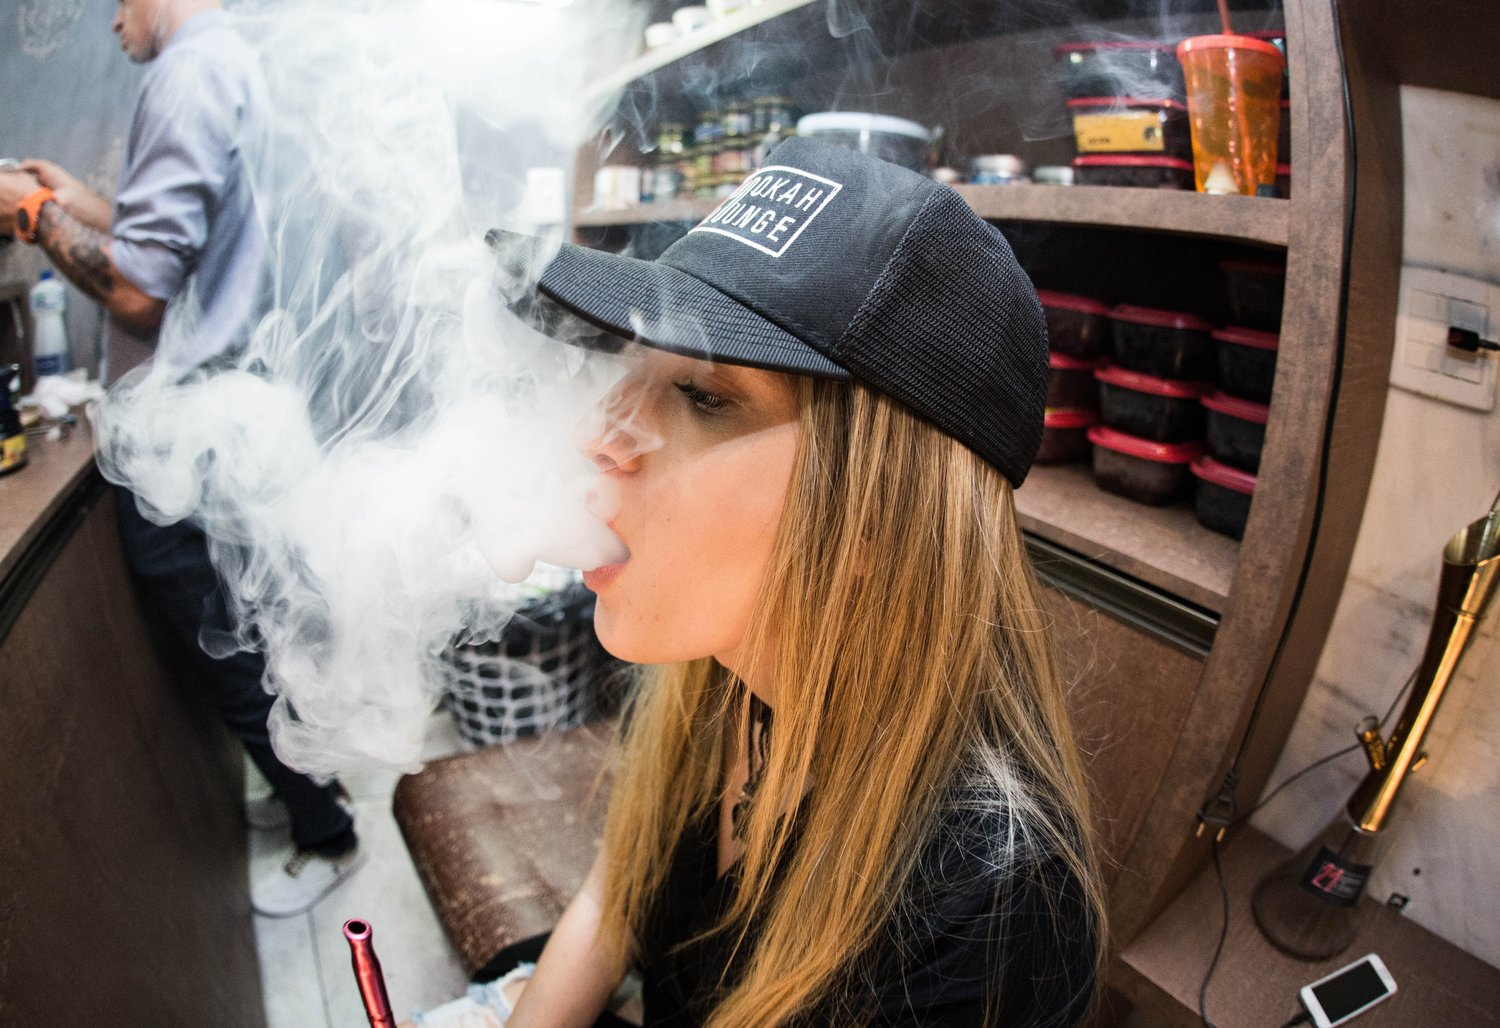 Switching to vaping could save 1 million years of life